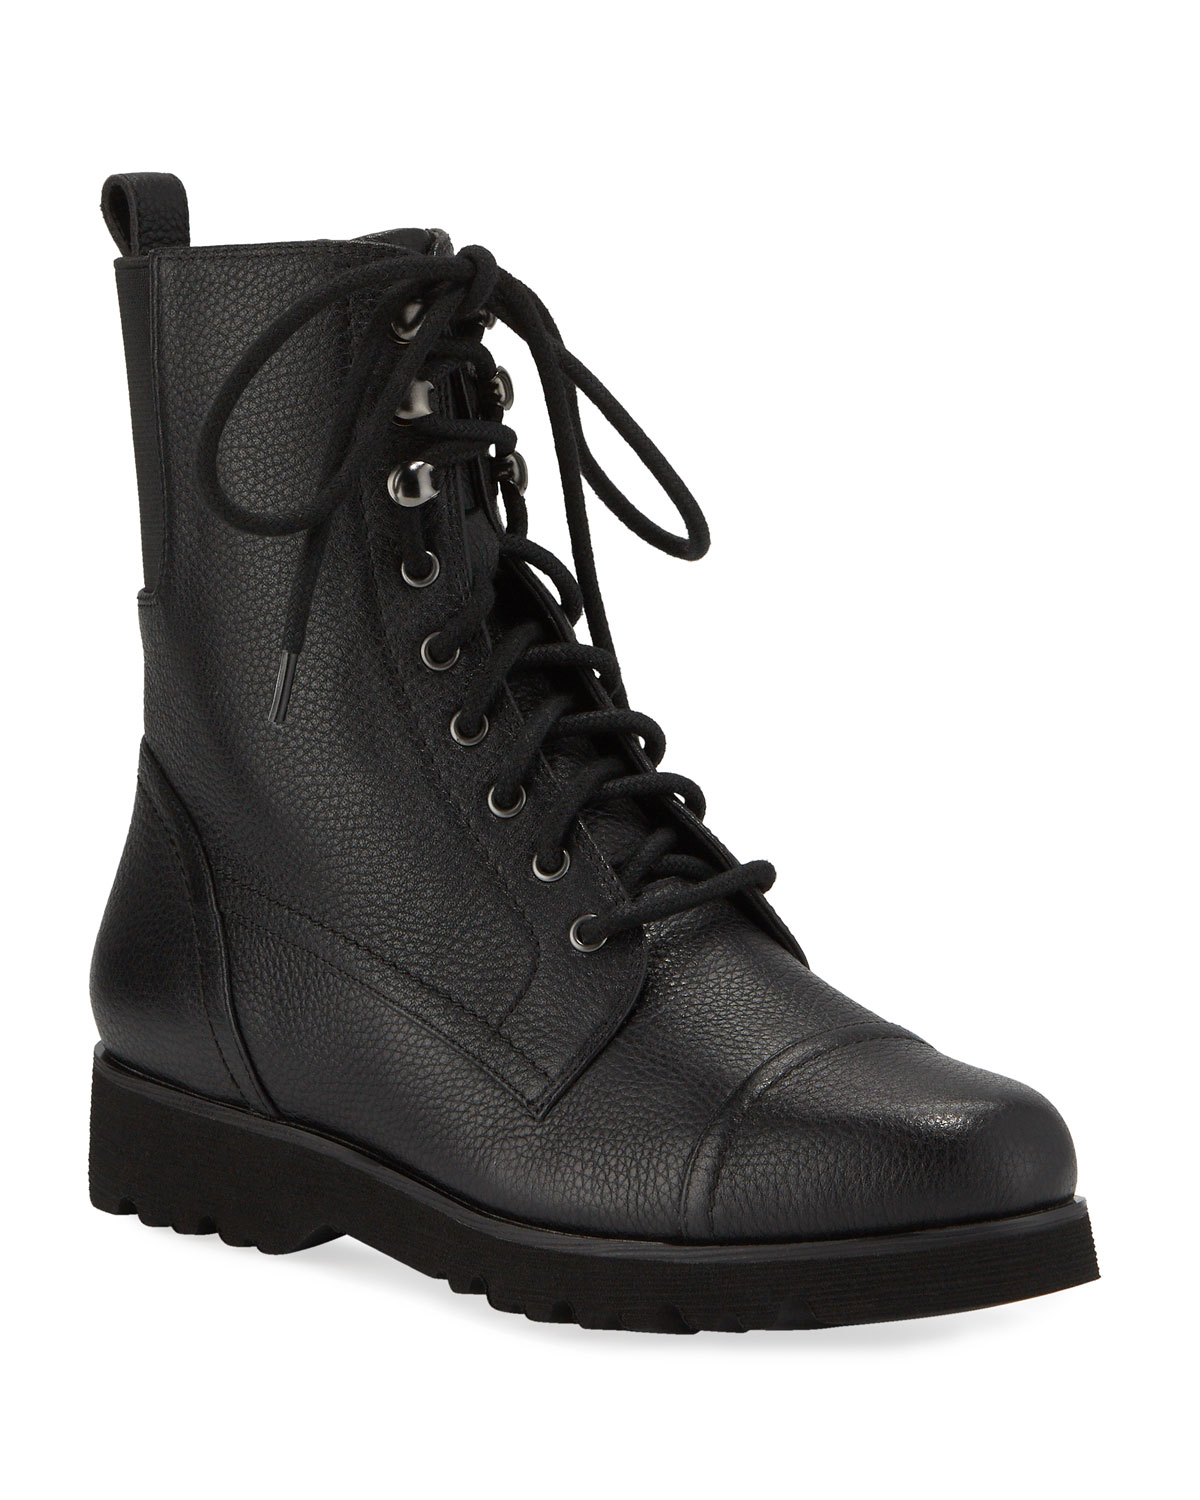 Camren Cap-Toe Leather Hiker Boots